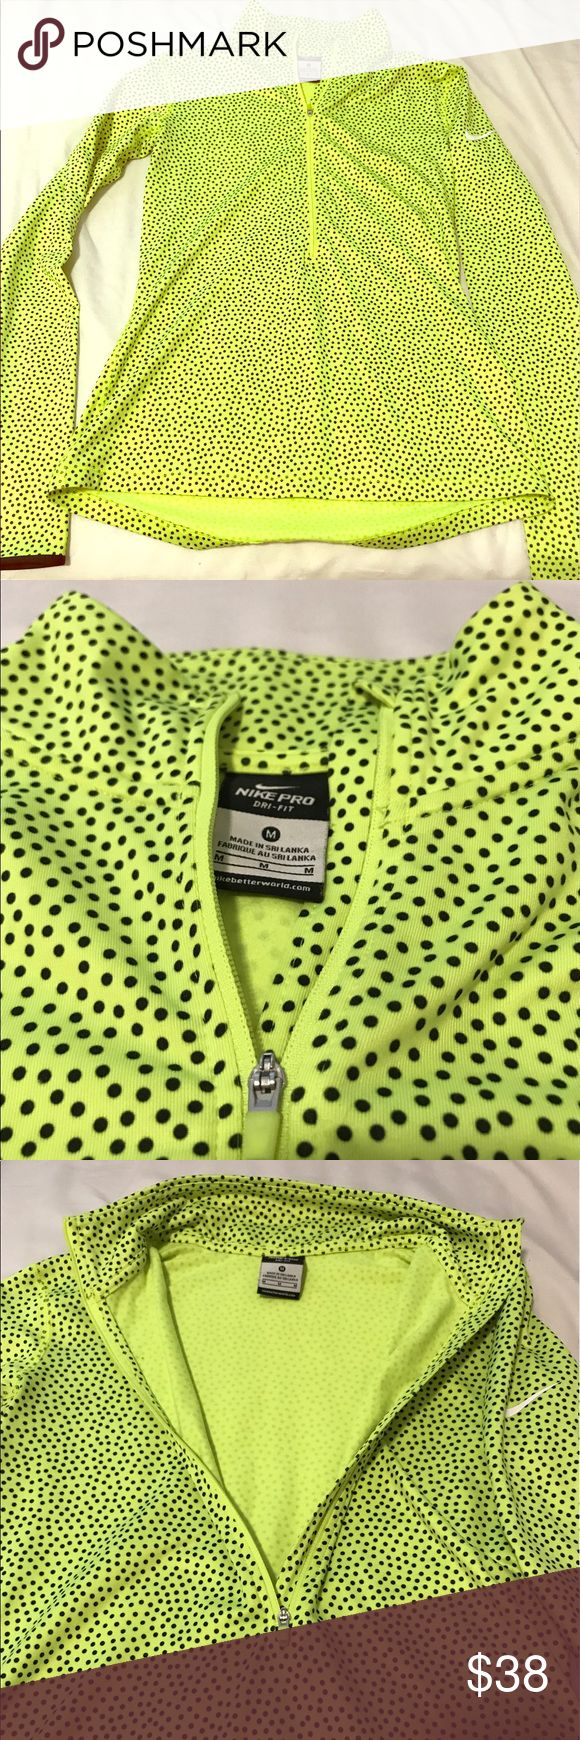 Neon Nike Polka Dot Zip Up Neon green Nike zip up with black polka dots and thumb holes. The jacket has a nice tailored fit, size medium but runs small. Only worn twice, it's in perfect condition! Nike Tops Sweatshirts & Hoodies